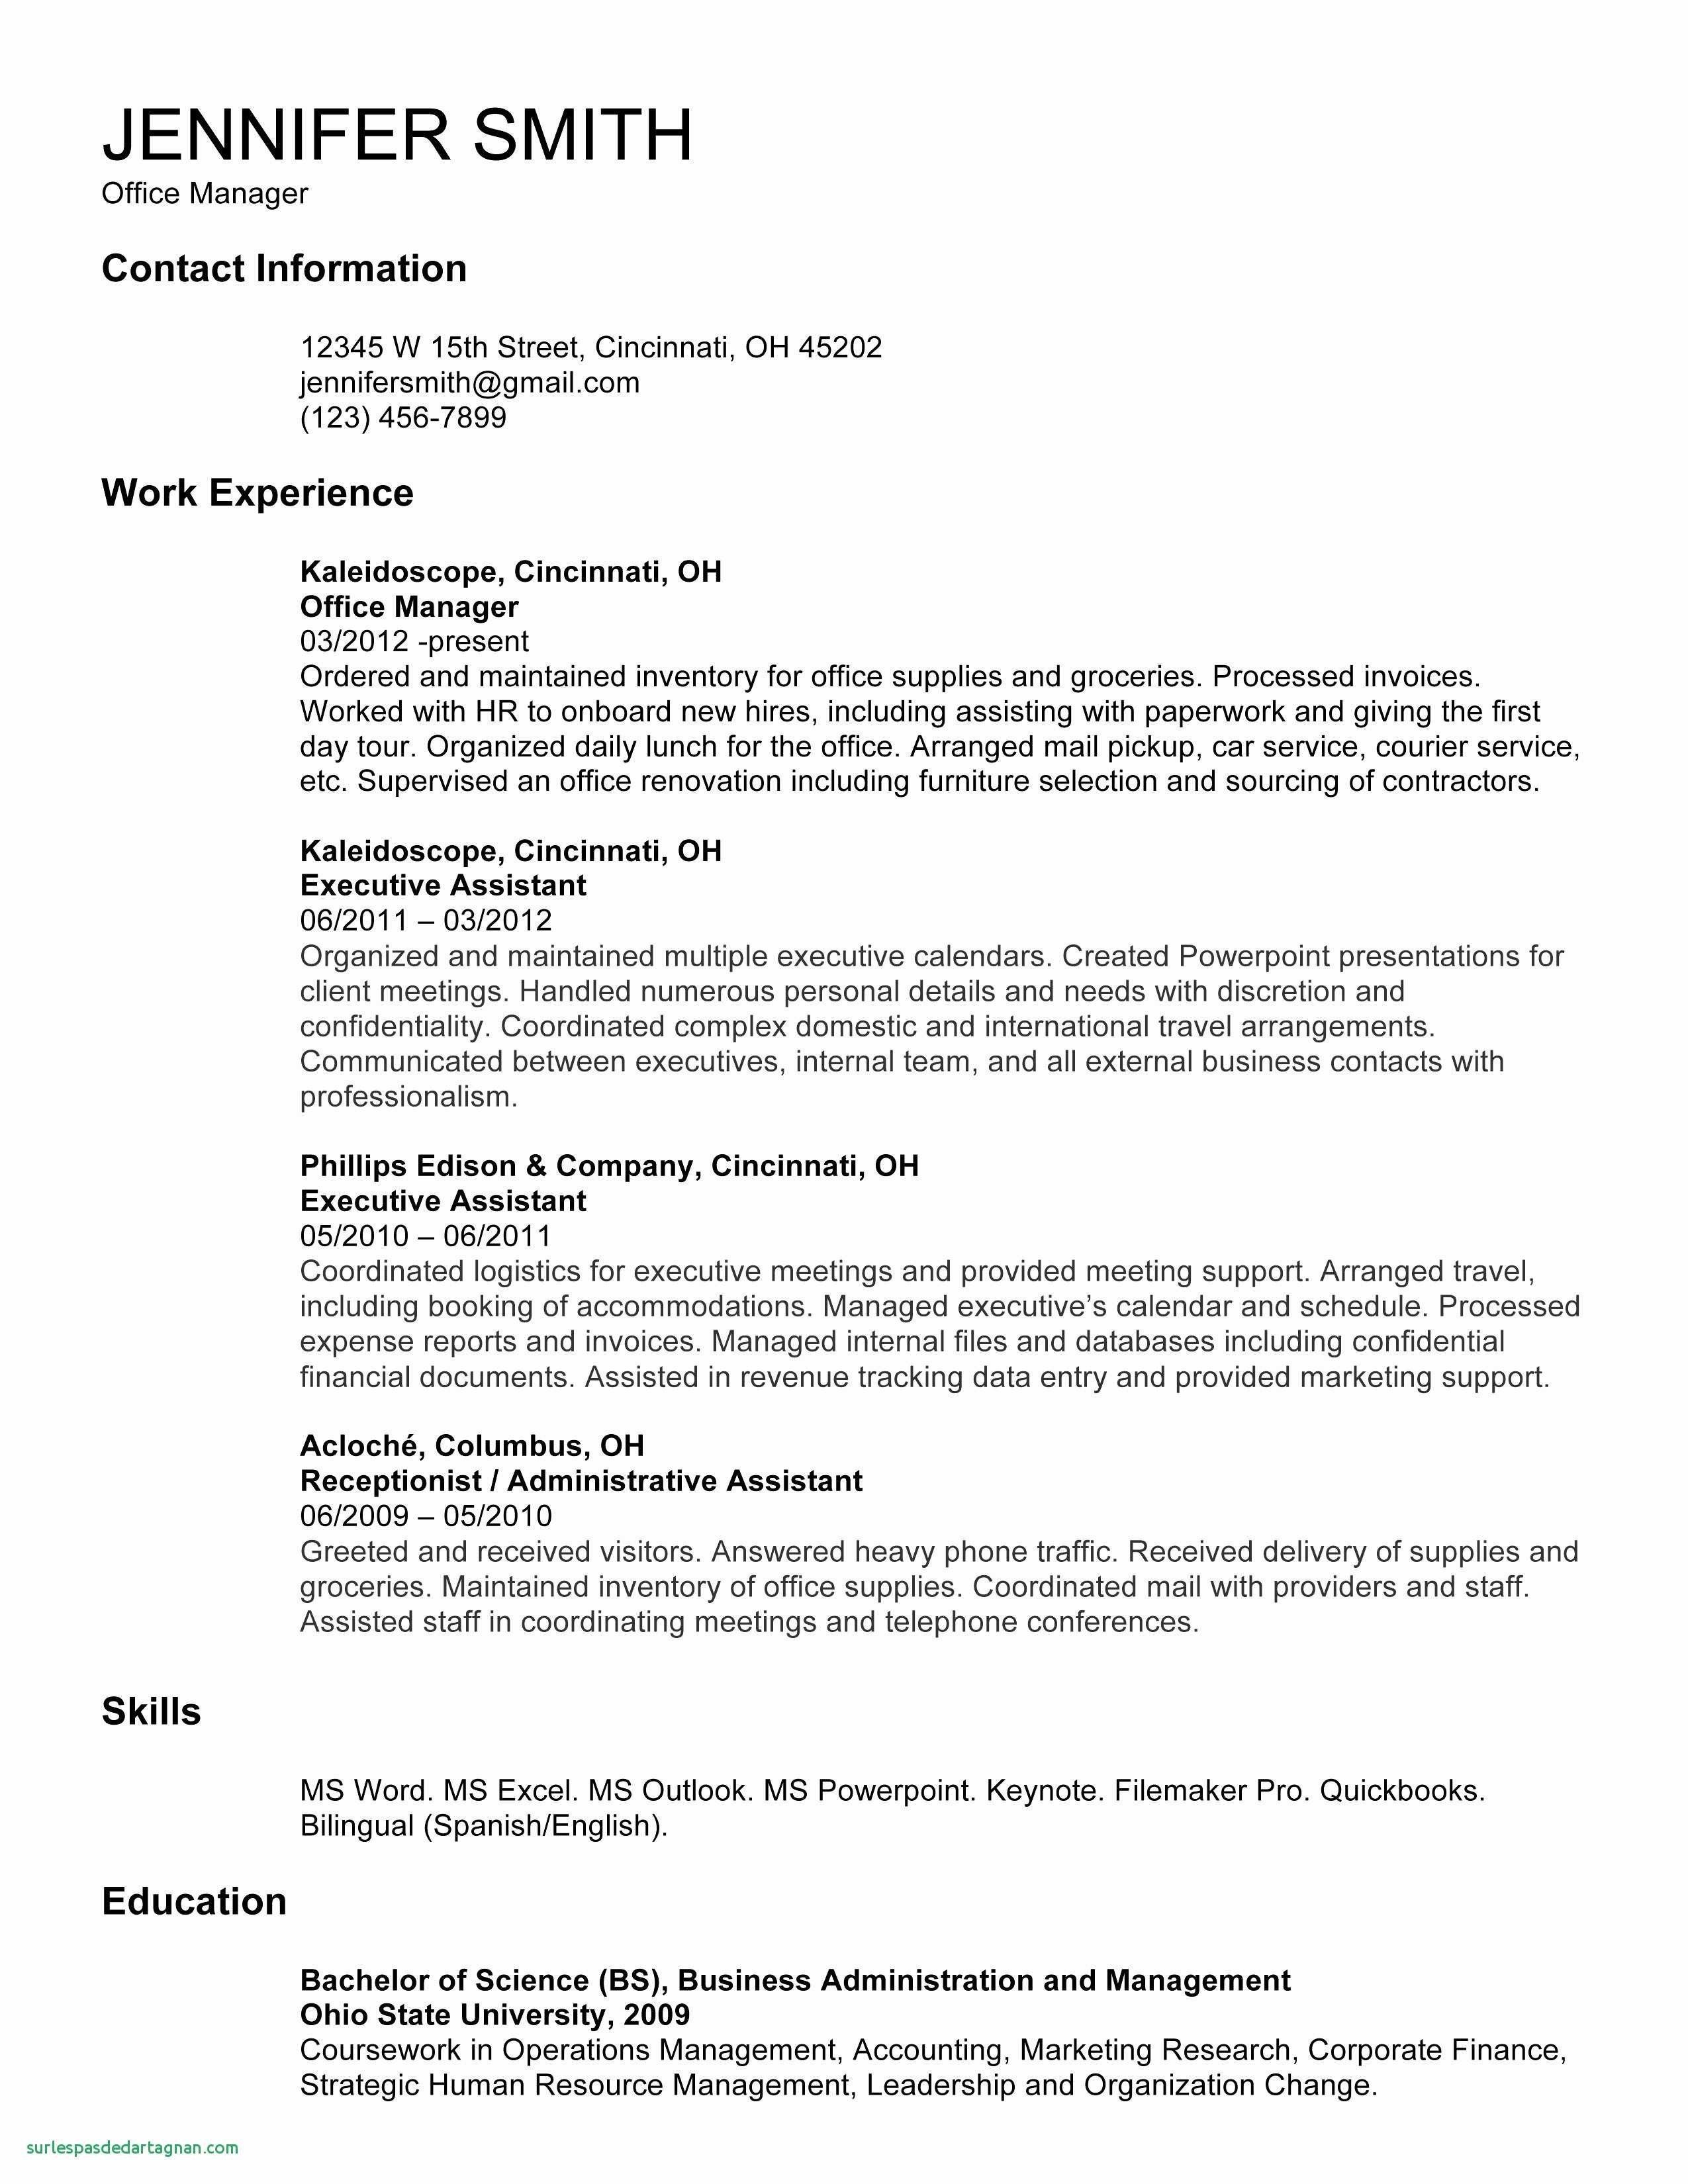 Basic Resume Template Word - Basic Resume Template Download Valid ¢Ë†Å¡ Resume Template Download